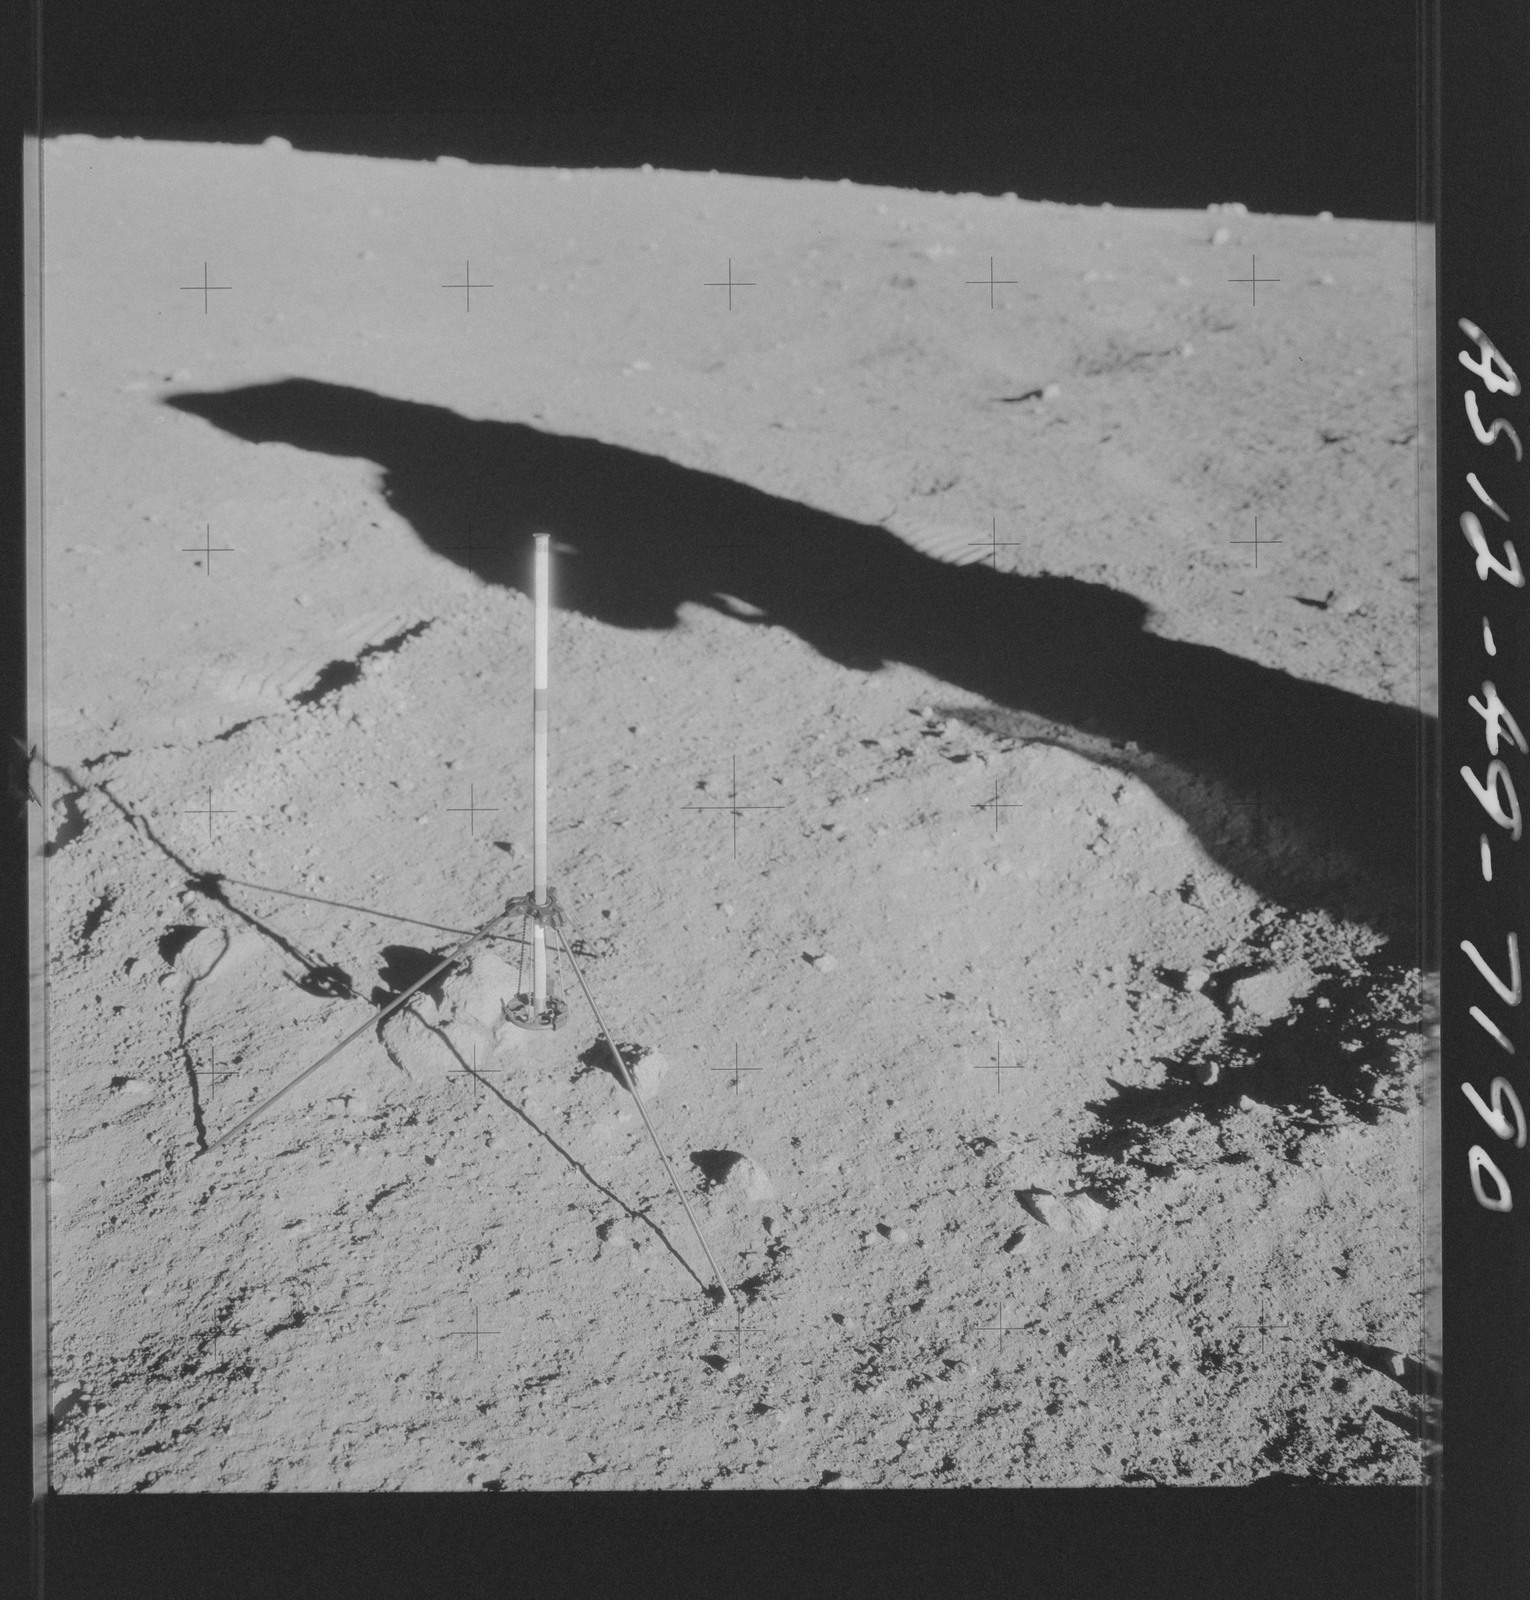 AS12-49-7190 - Apollo 12 - Apollo 12 Mission image  - View of a core sampler on the lunar surface